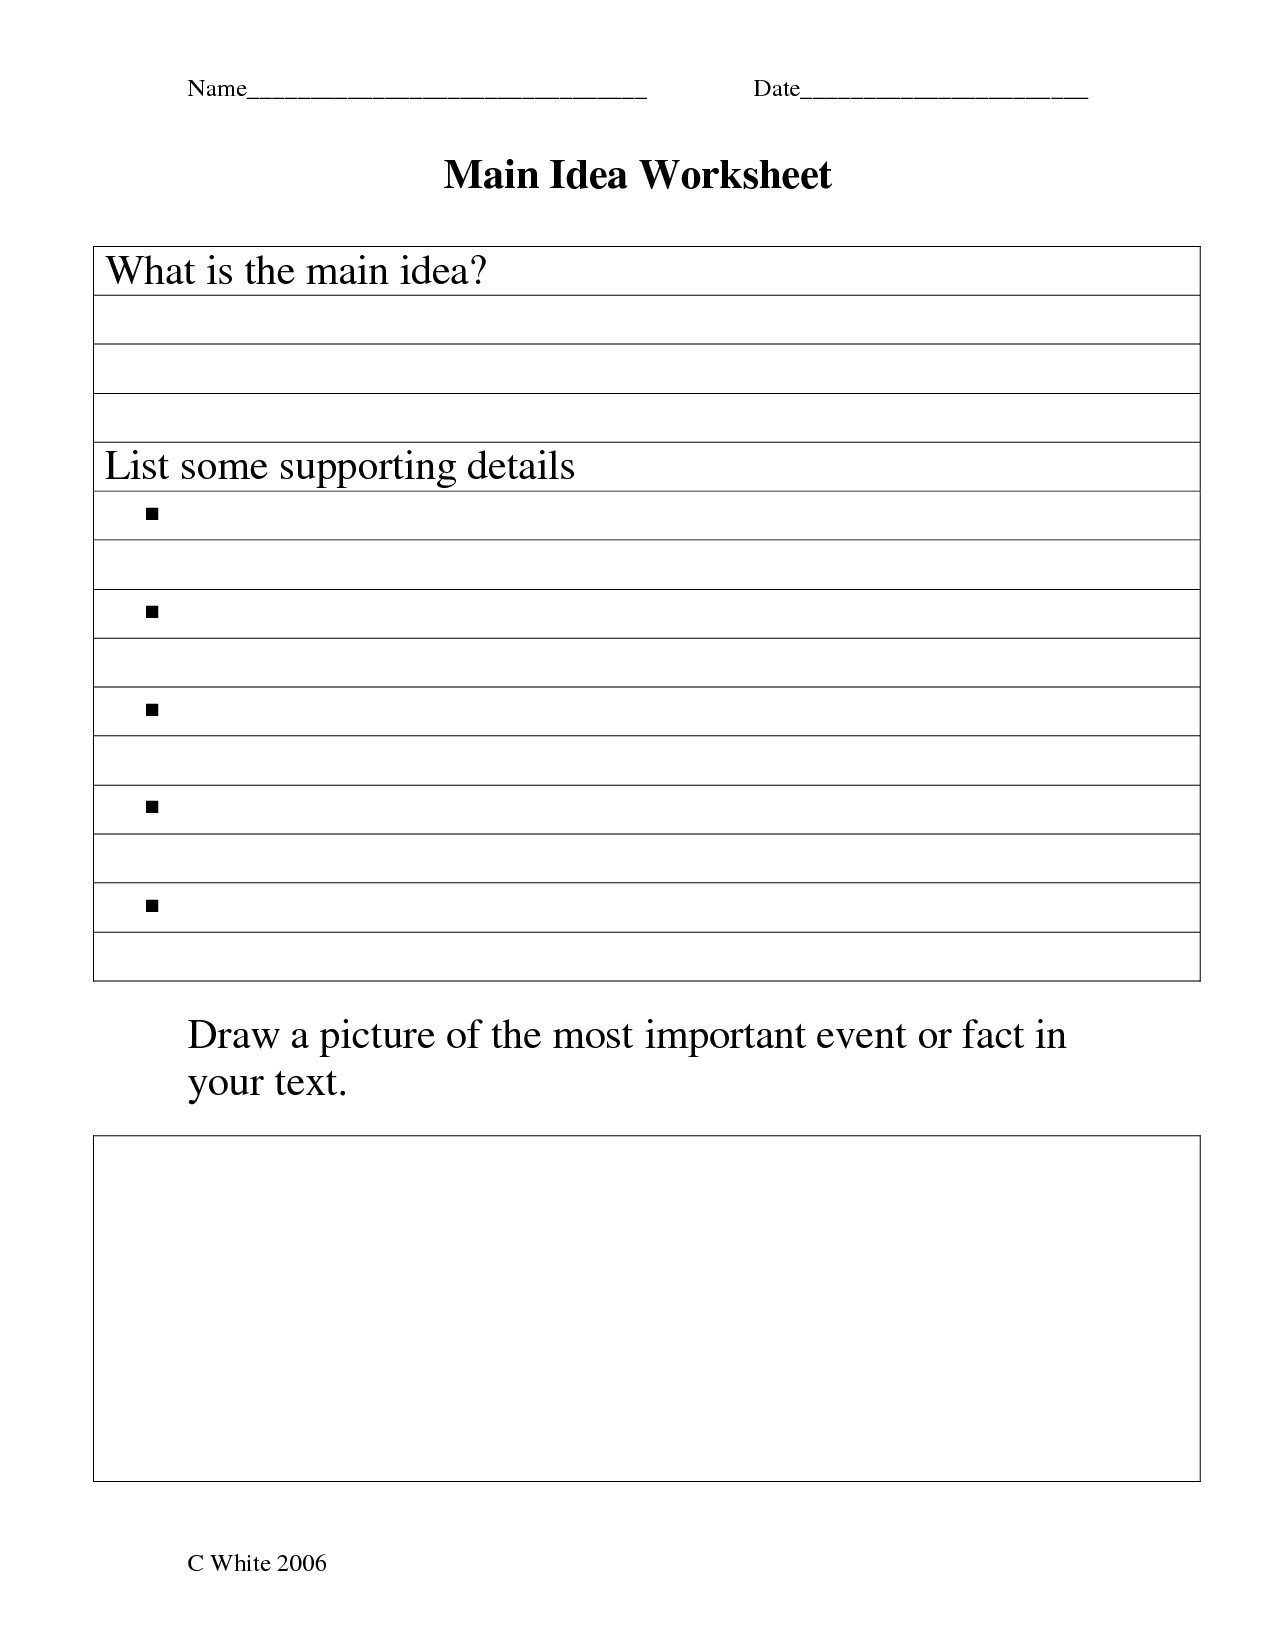 Free Worksheet Main Idea Worksheets Middle School 17 best images about main idea on pinterest graphic organizers common cores and exit slips